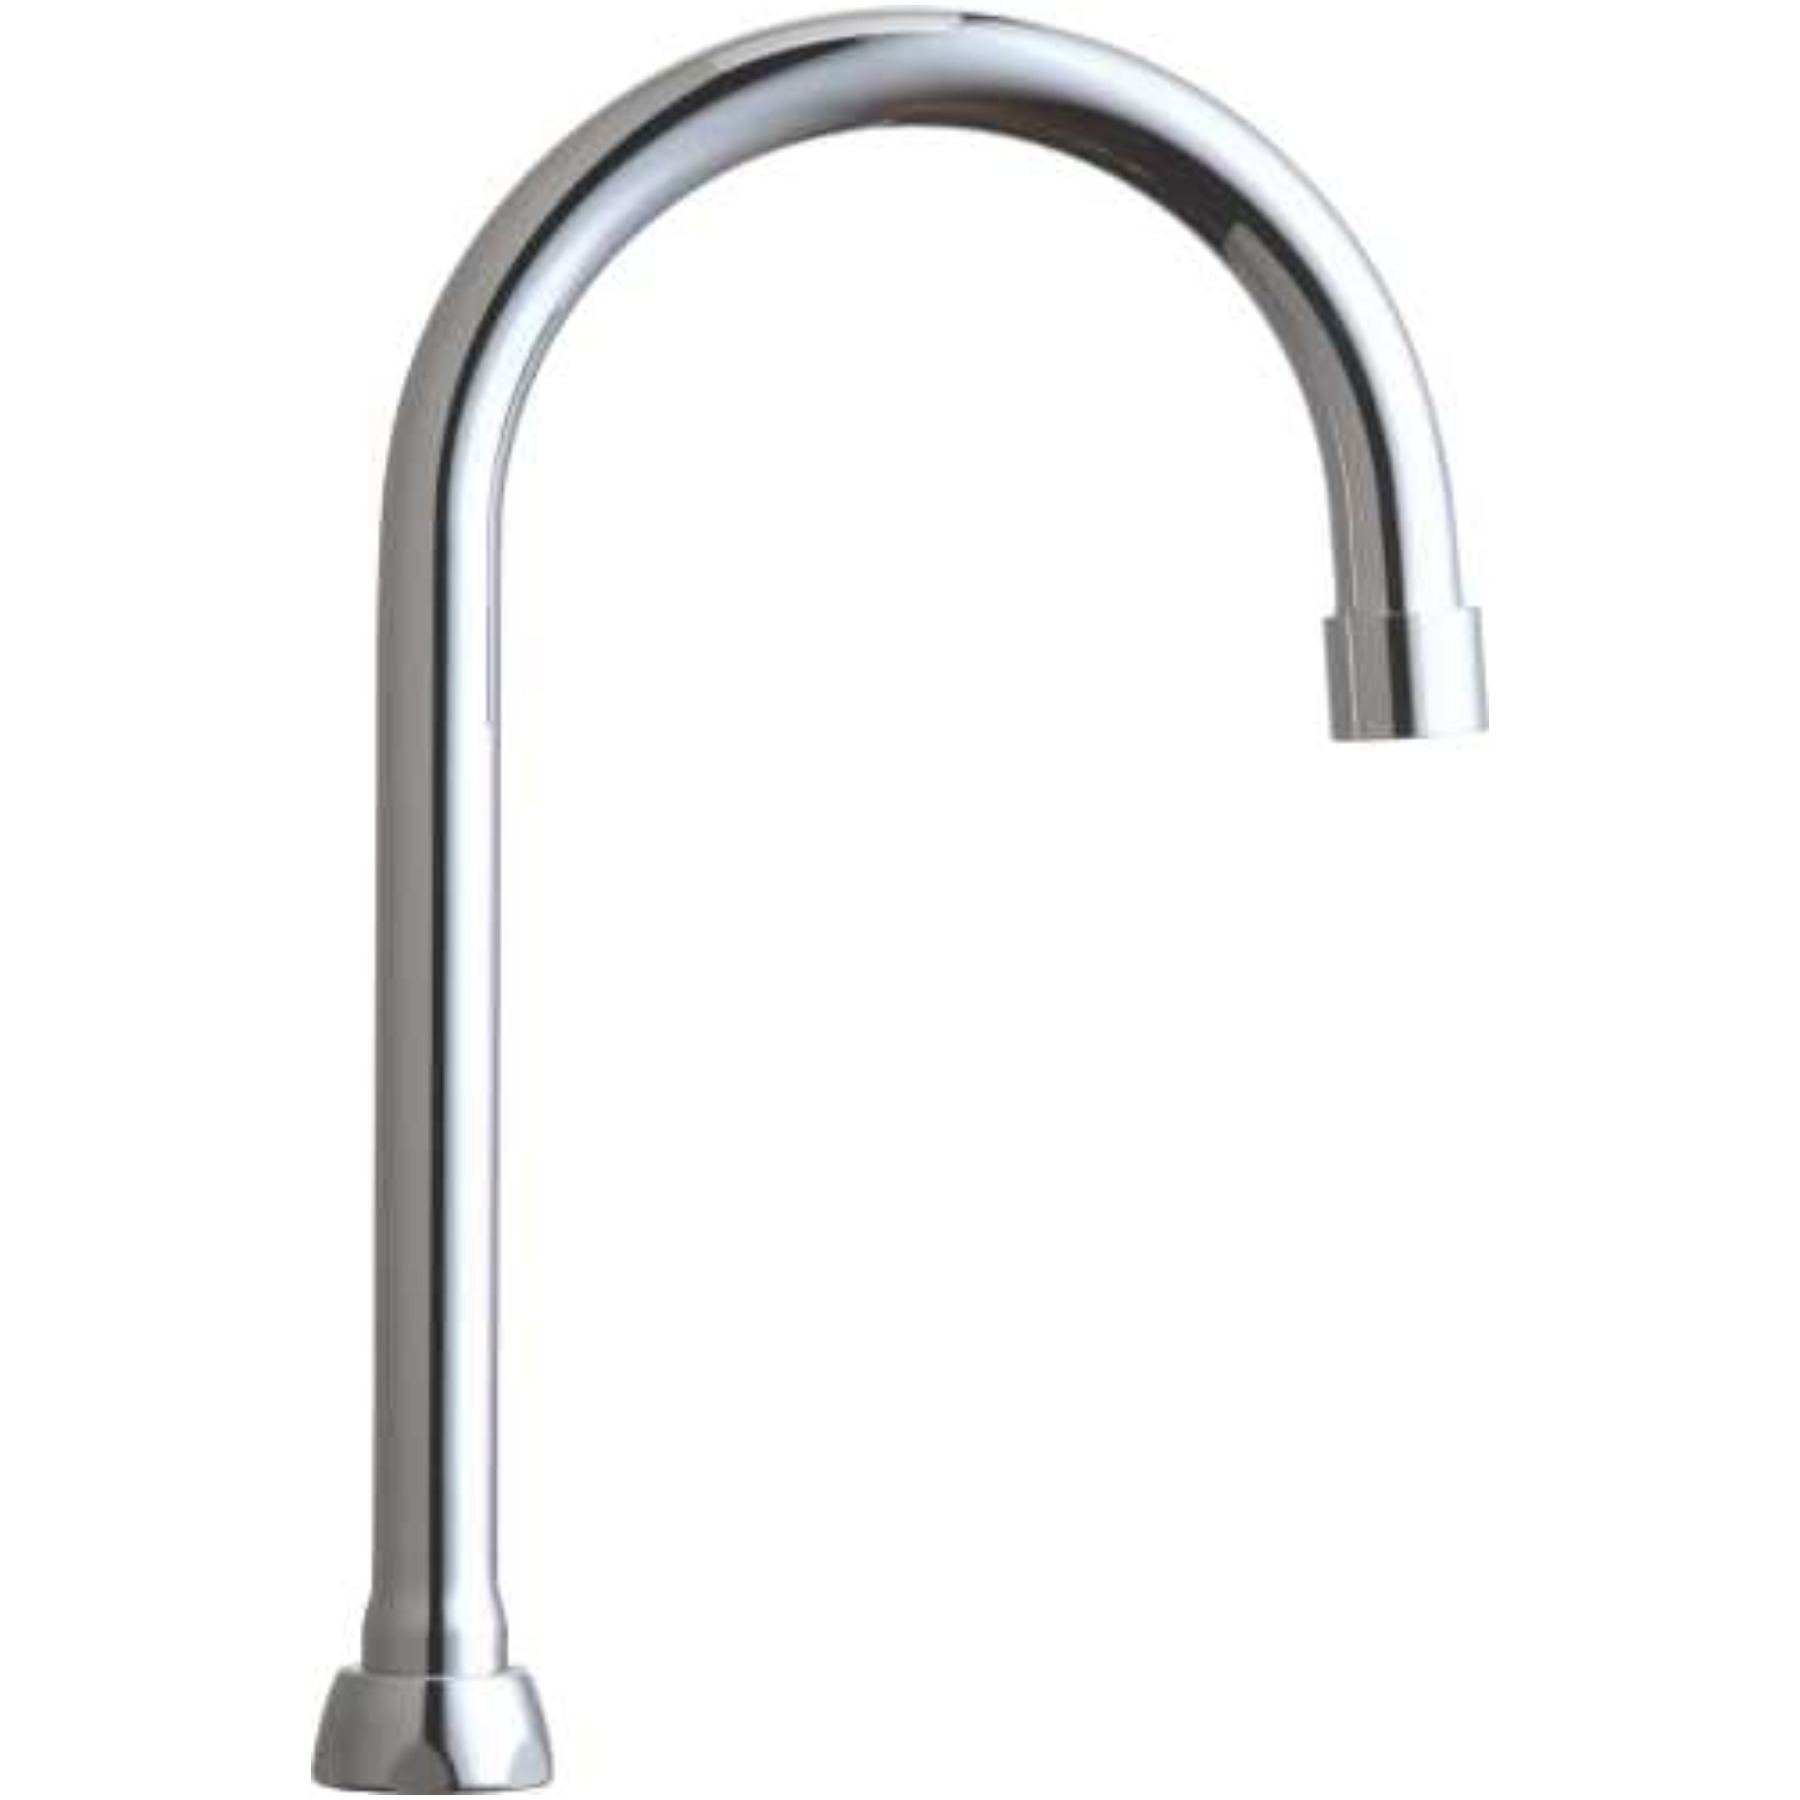 Only Chicago Faucets Ecast Lead Free Gooseneck Spout 9 3 4 In Tall 3 8 In